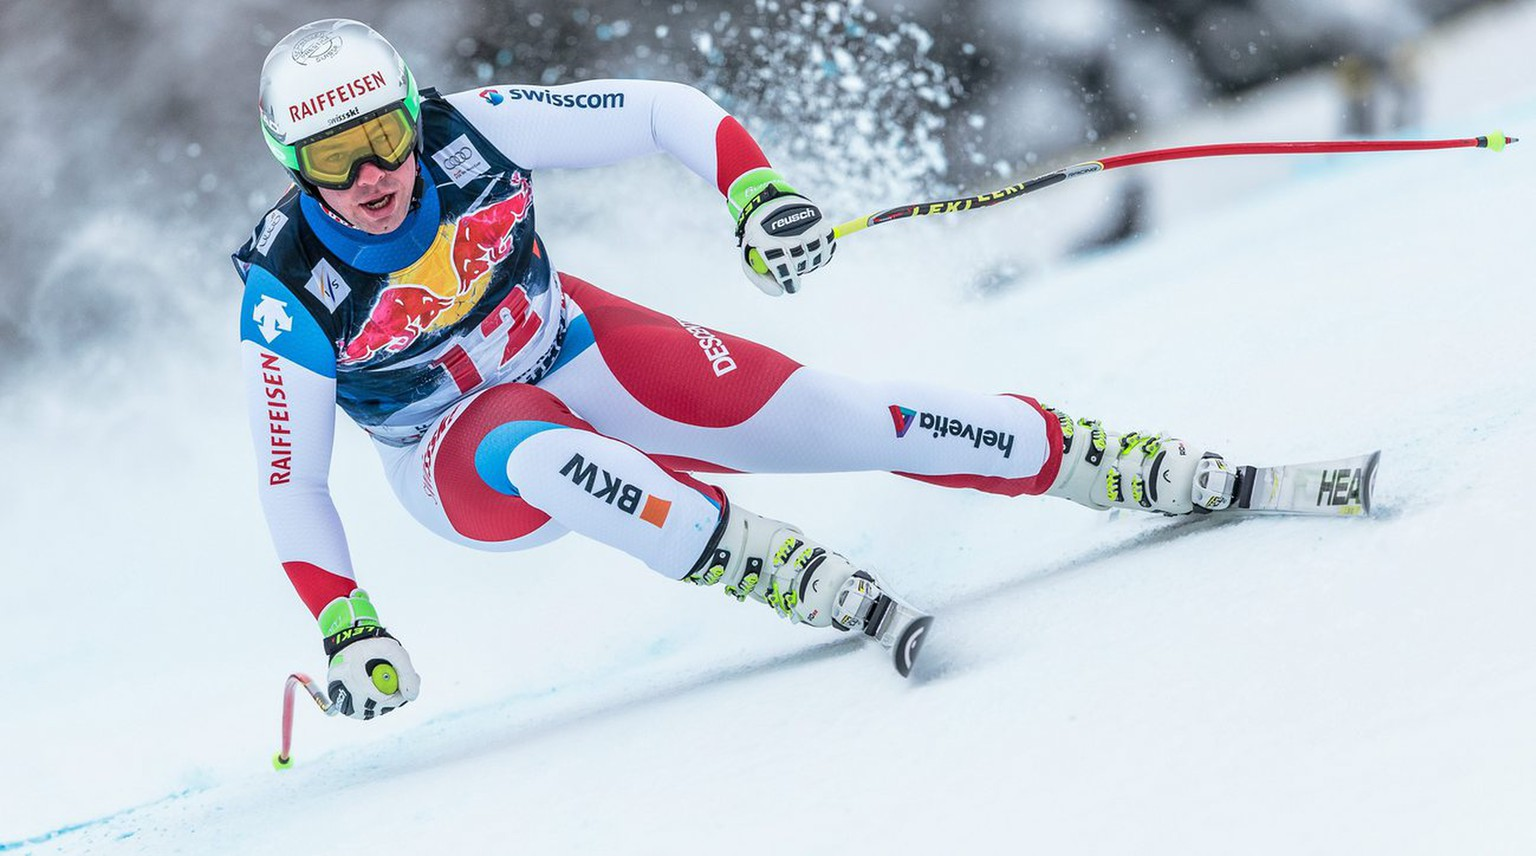 epa05120579 Beat Feuz of Switzerland competes in the men's Alpine Skiing World Cup Downhill race in Kitzbuehel, Austria, 23 January 2016.  EPA/EXPA/JFK